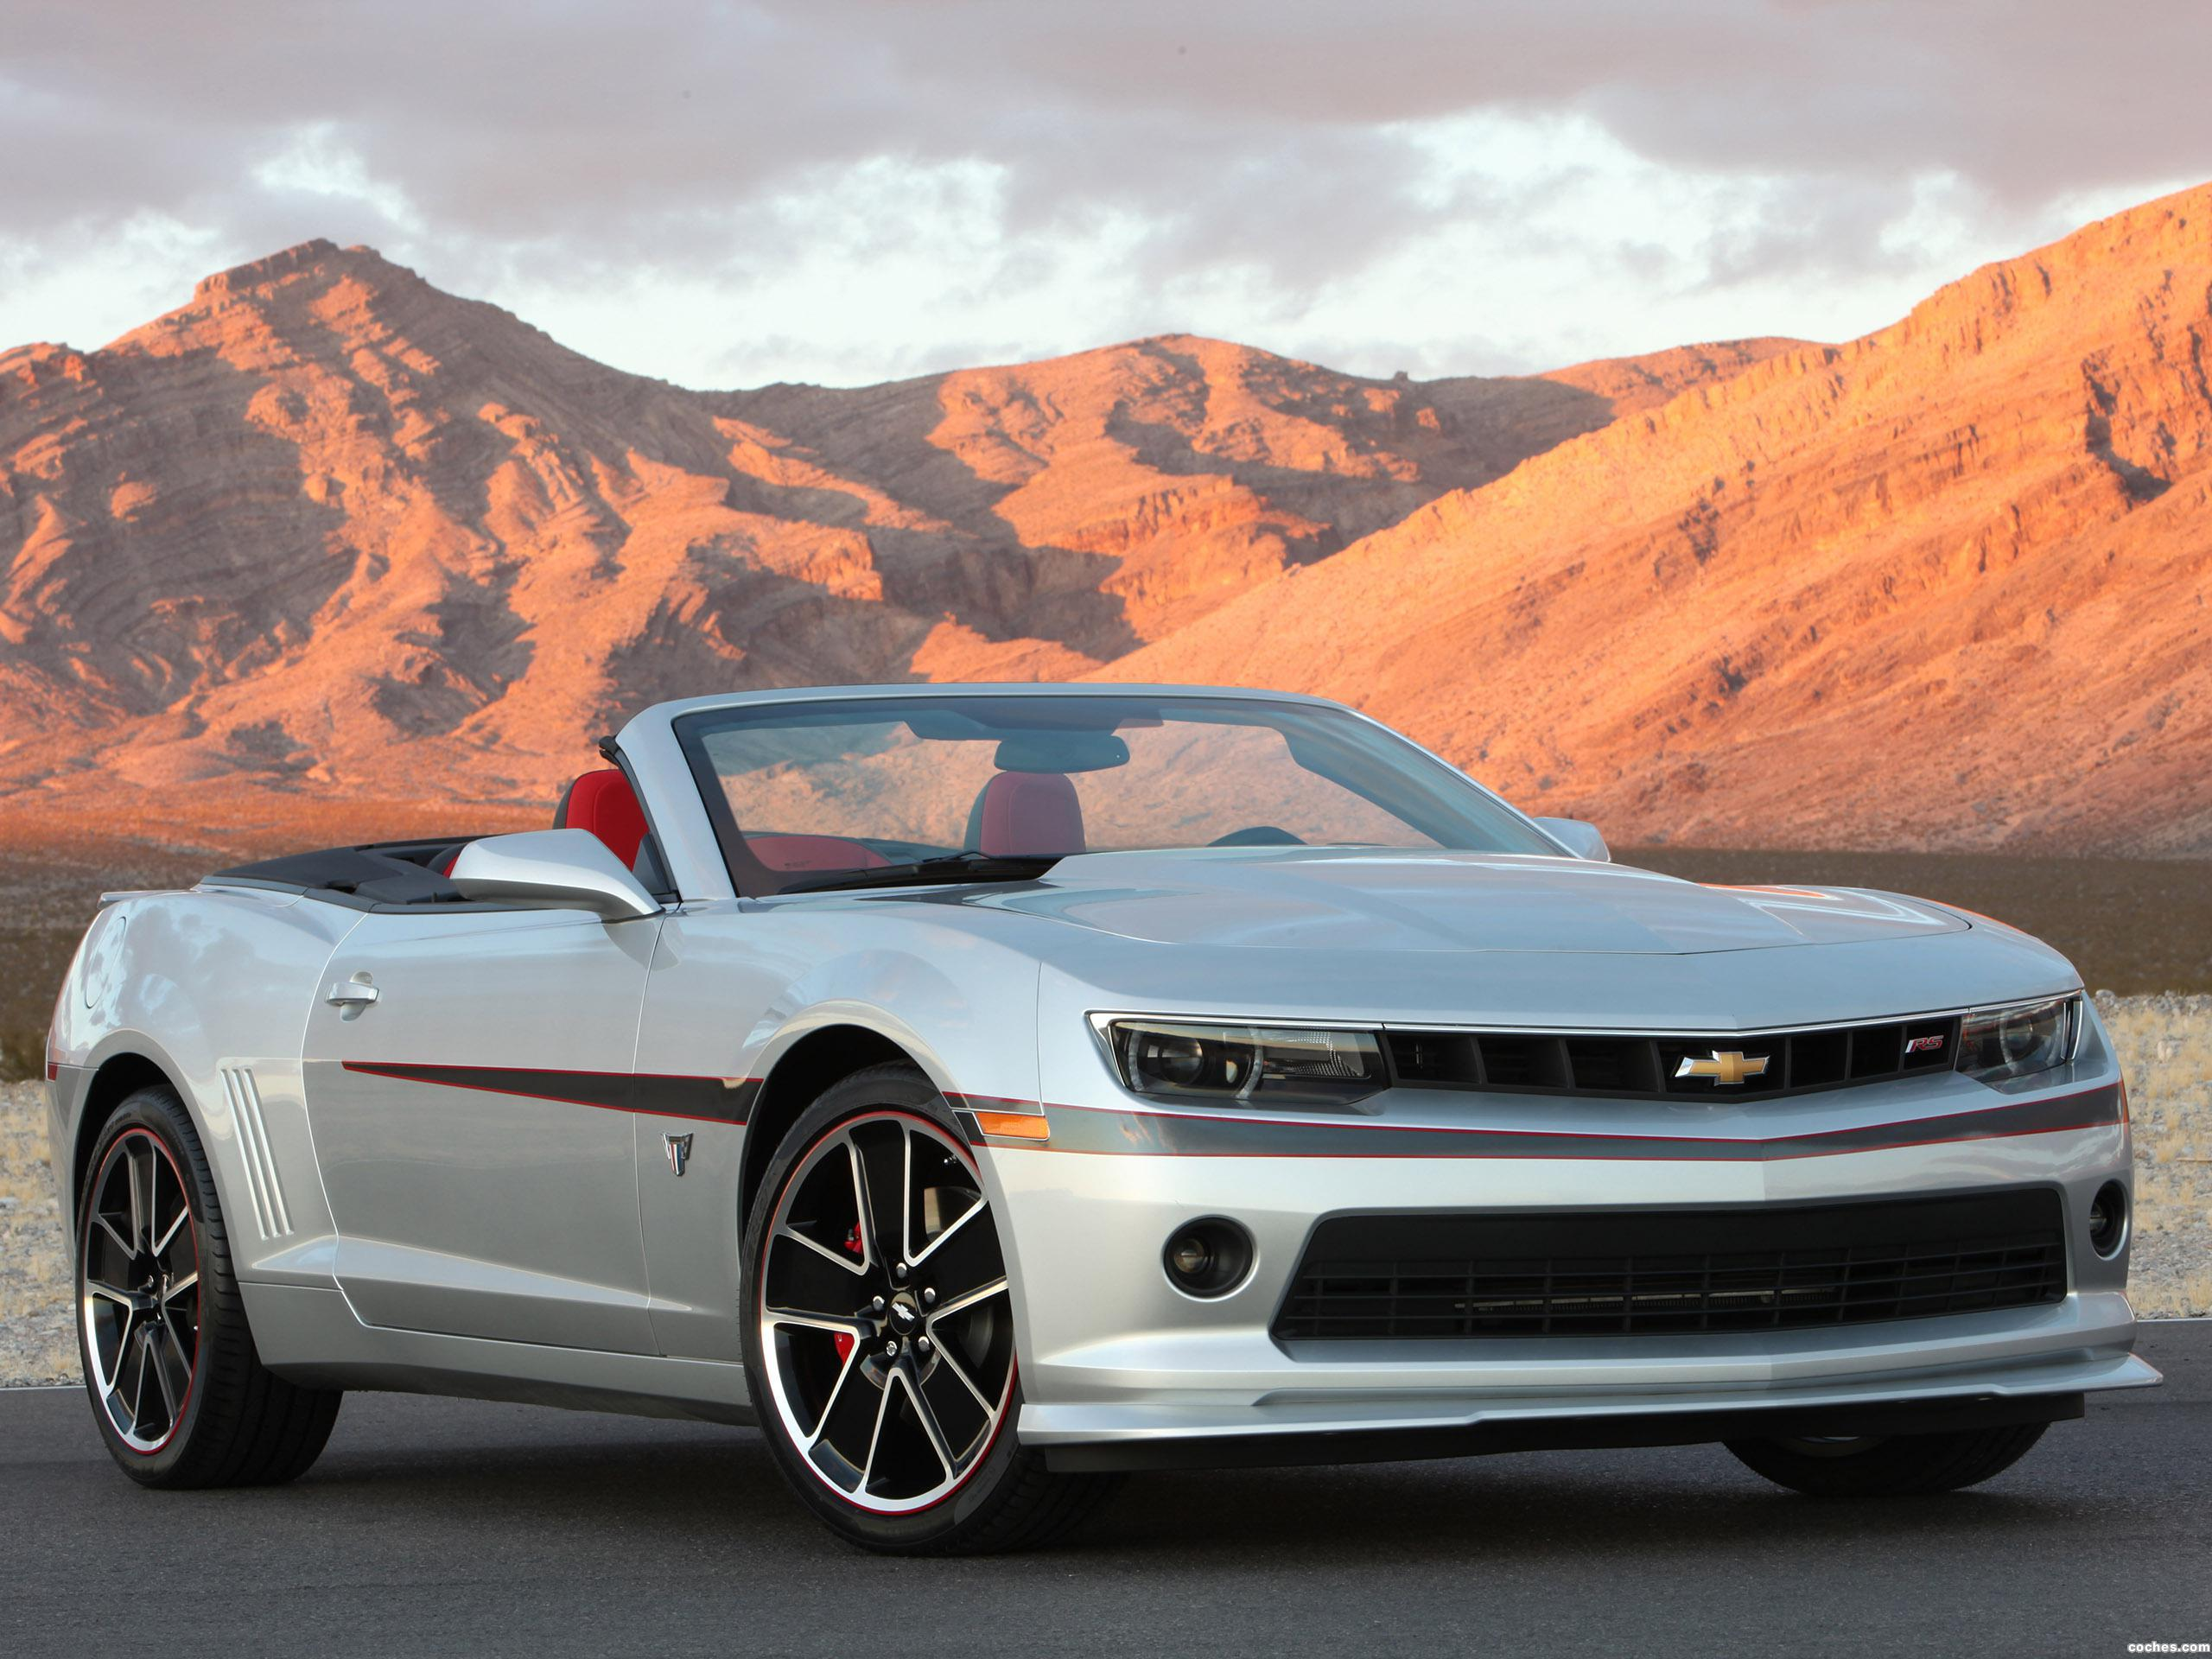 chevrolet_camaro-lt-rs-convertible-commemorative-edition-2015_r6